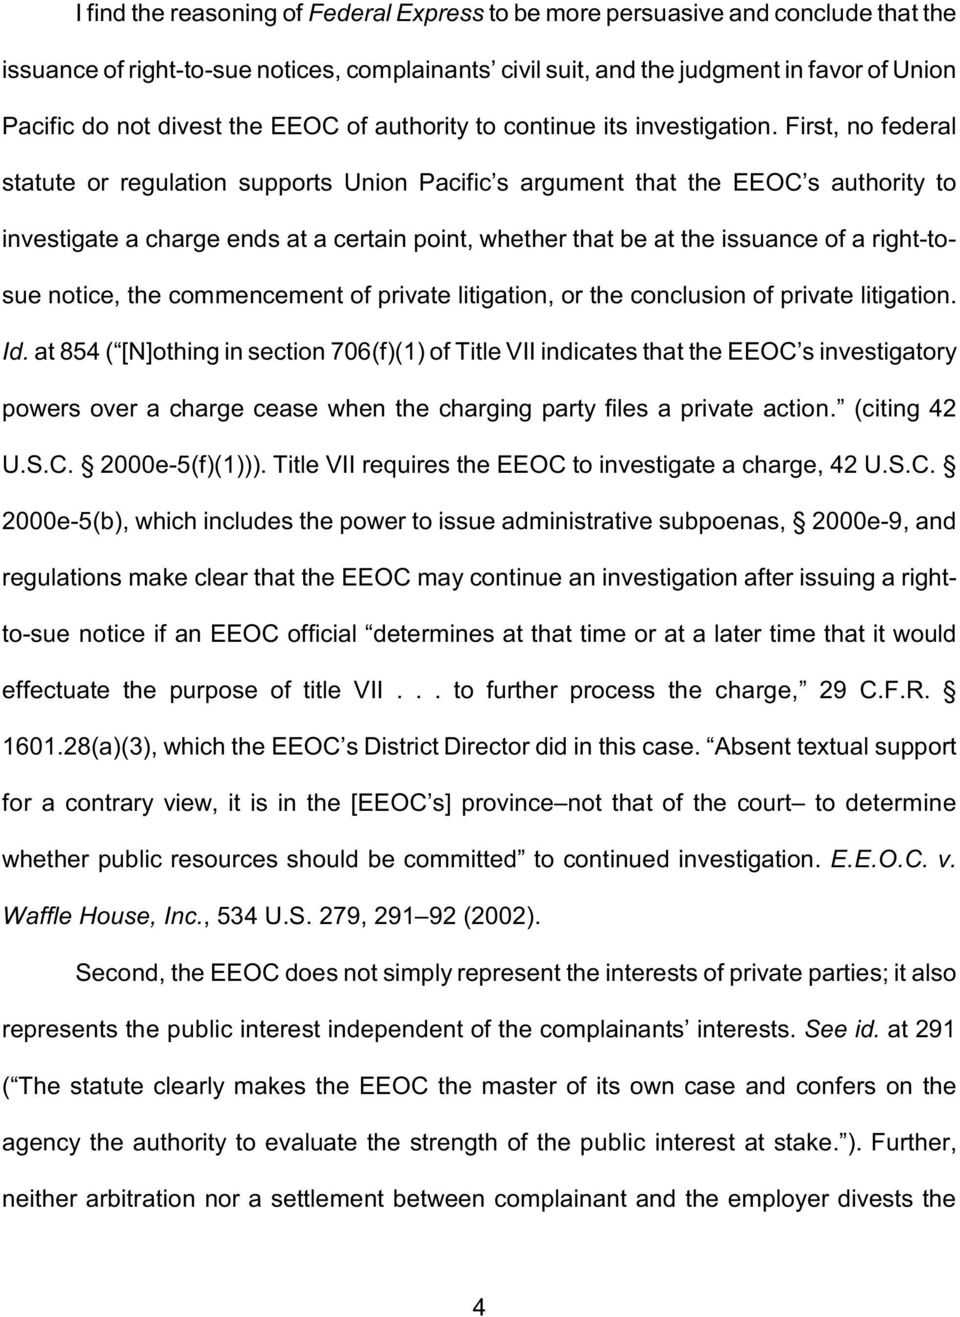 First, no federal statute or regulation supports Union Pacific s argument that the EEOC s authority to investigate a charge ends at a certain point, whether that be at the issuance of a right-tosue